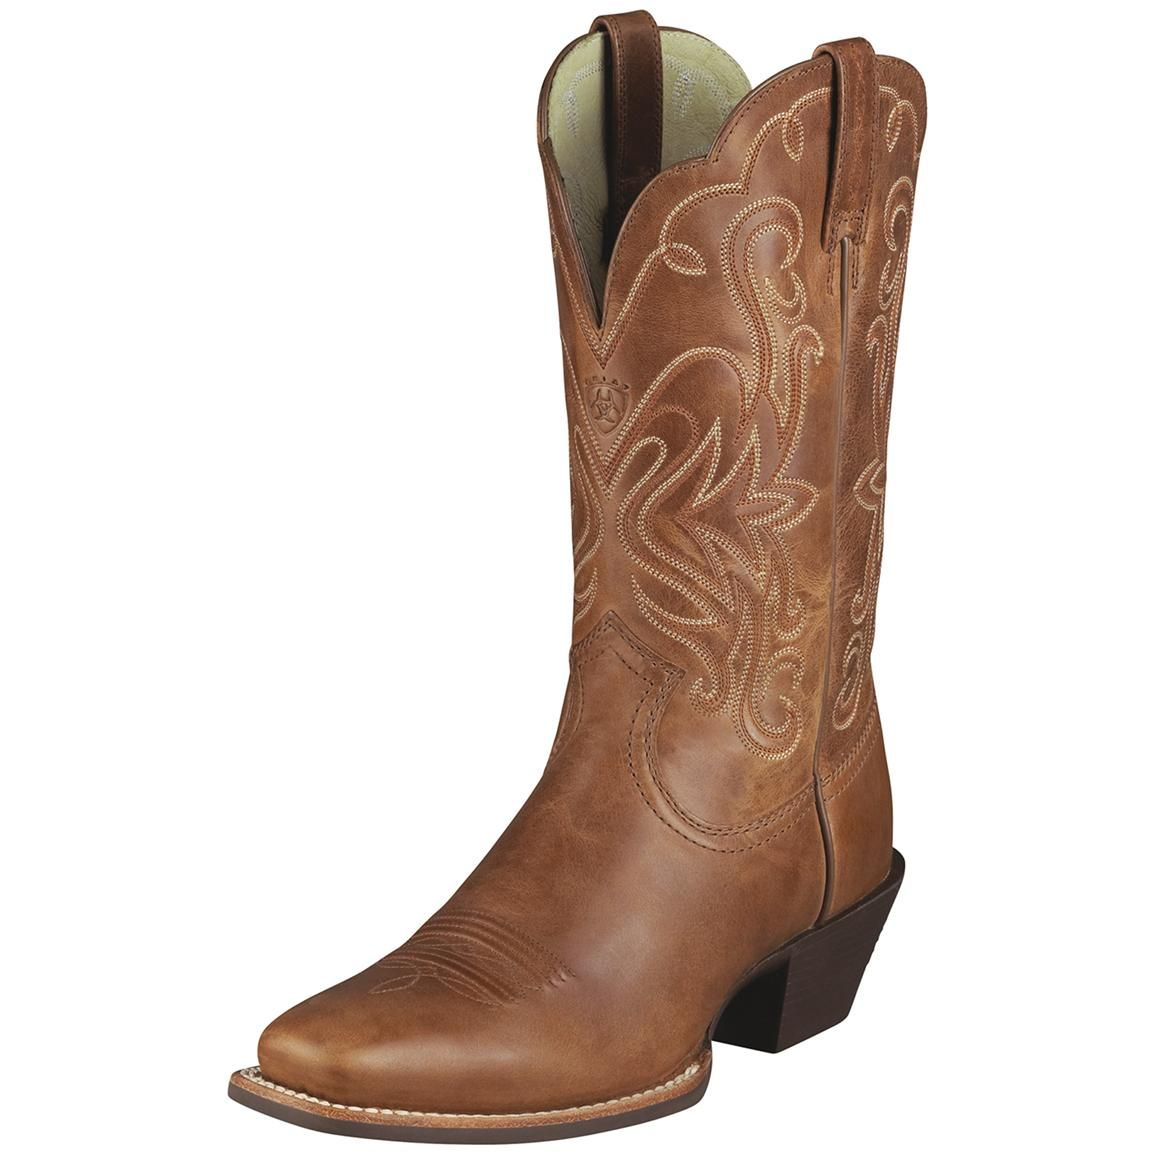 1000  images about Cowboy boots on Pinterest | It hurts